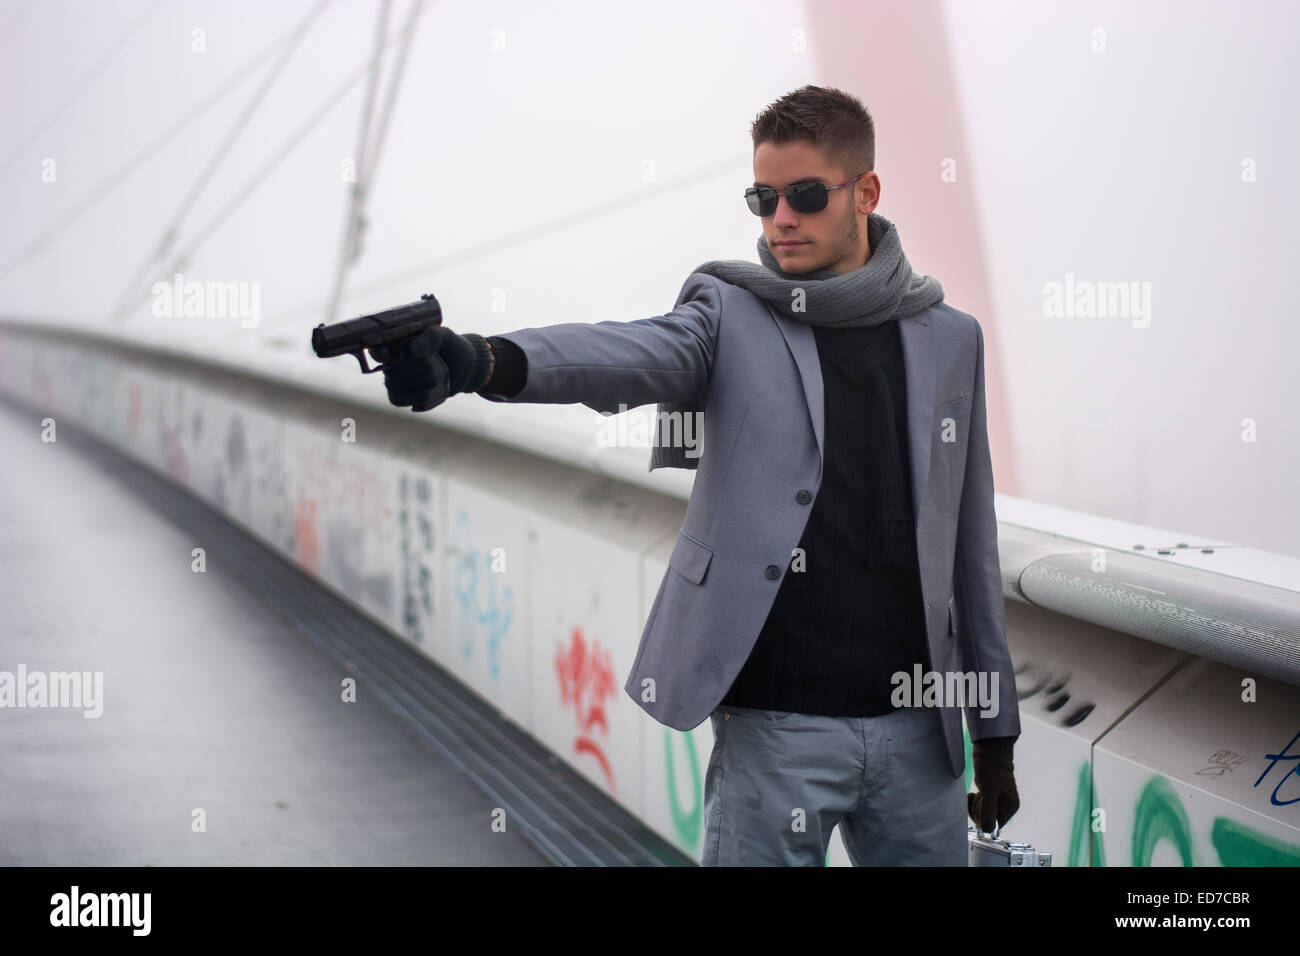 Young detective or policeman or mobster firing a gun - Stock Image